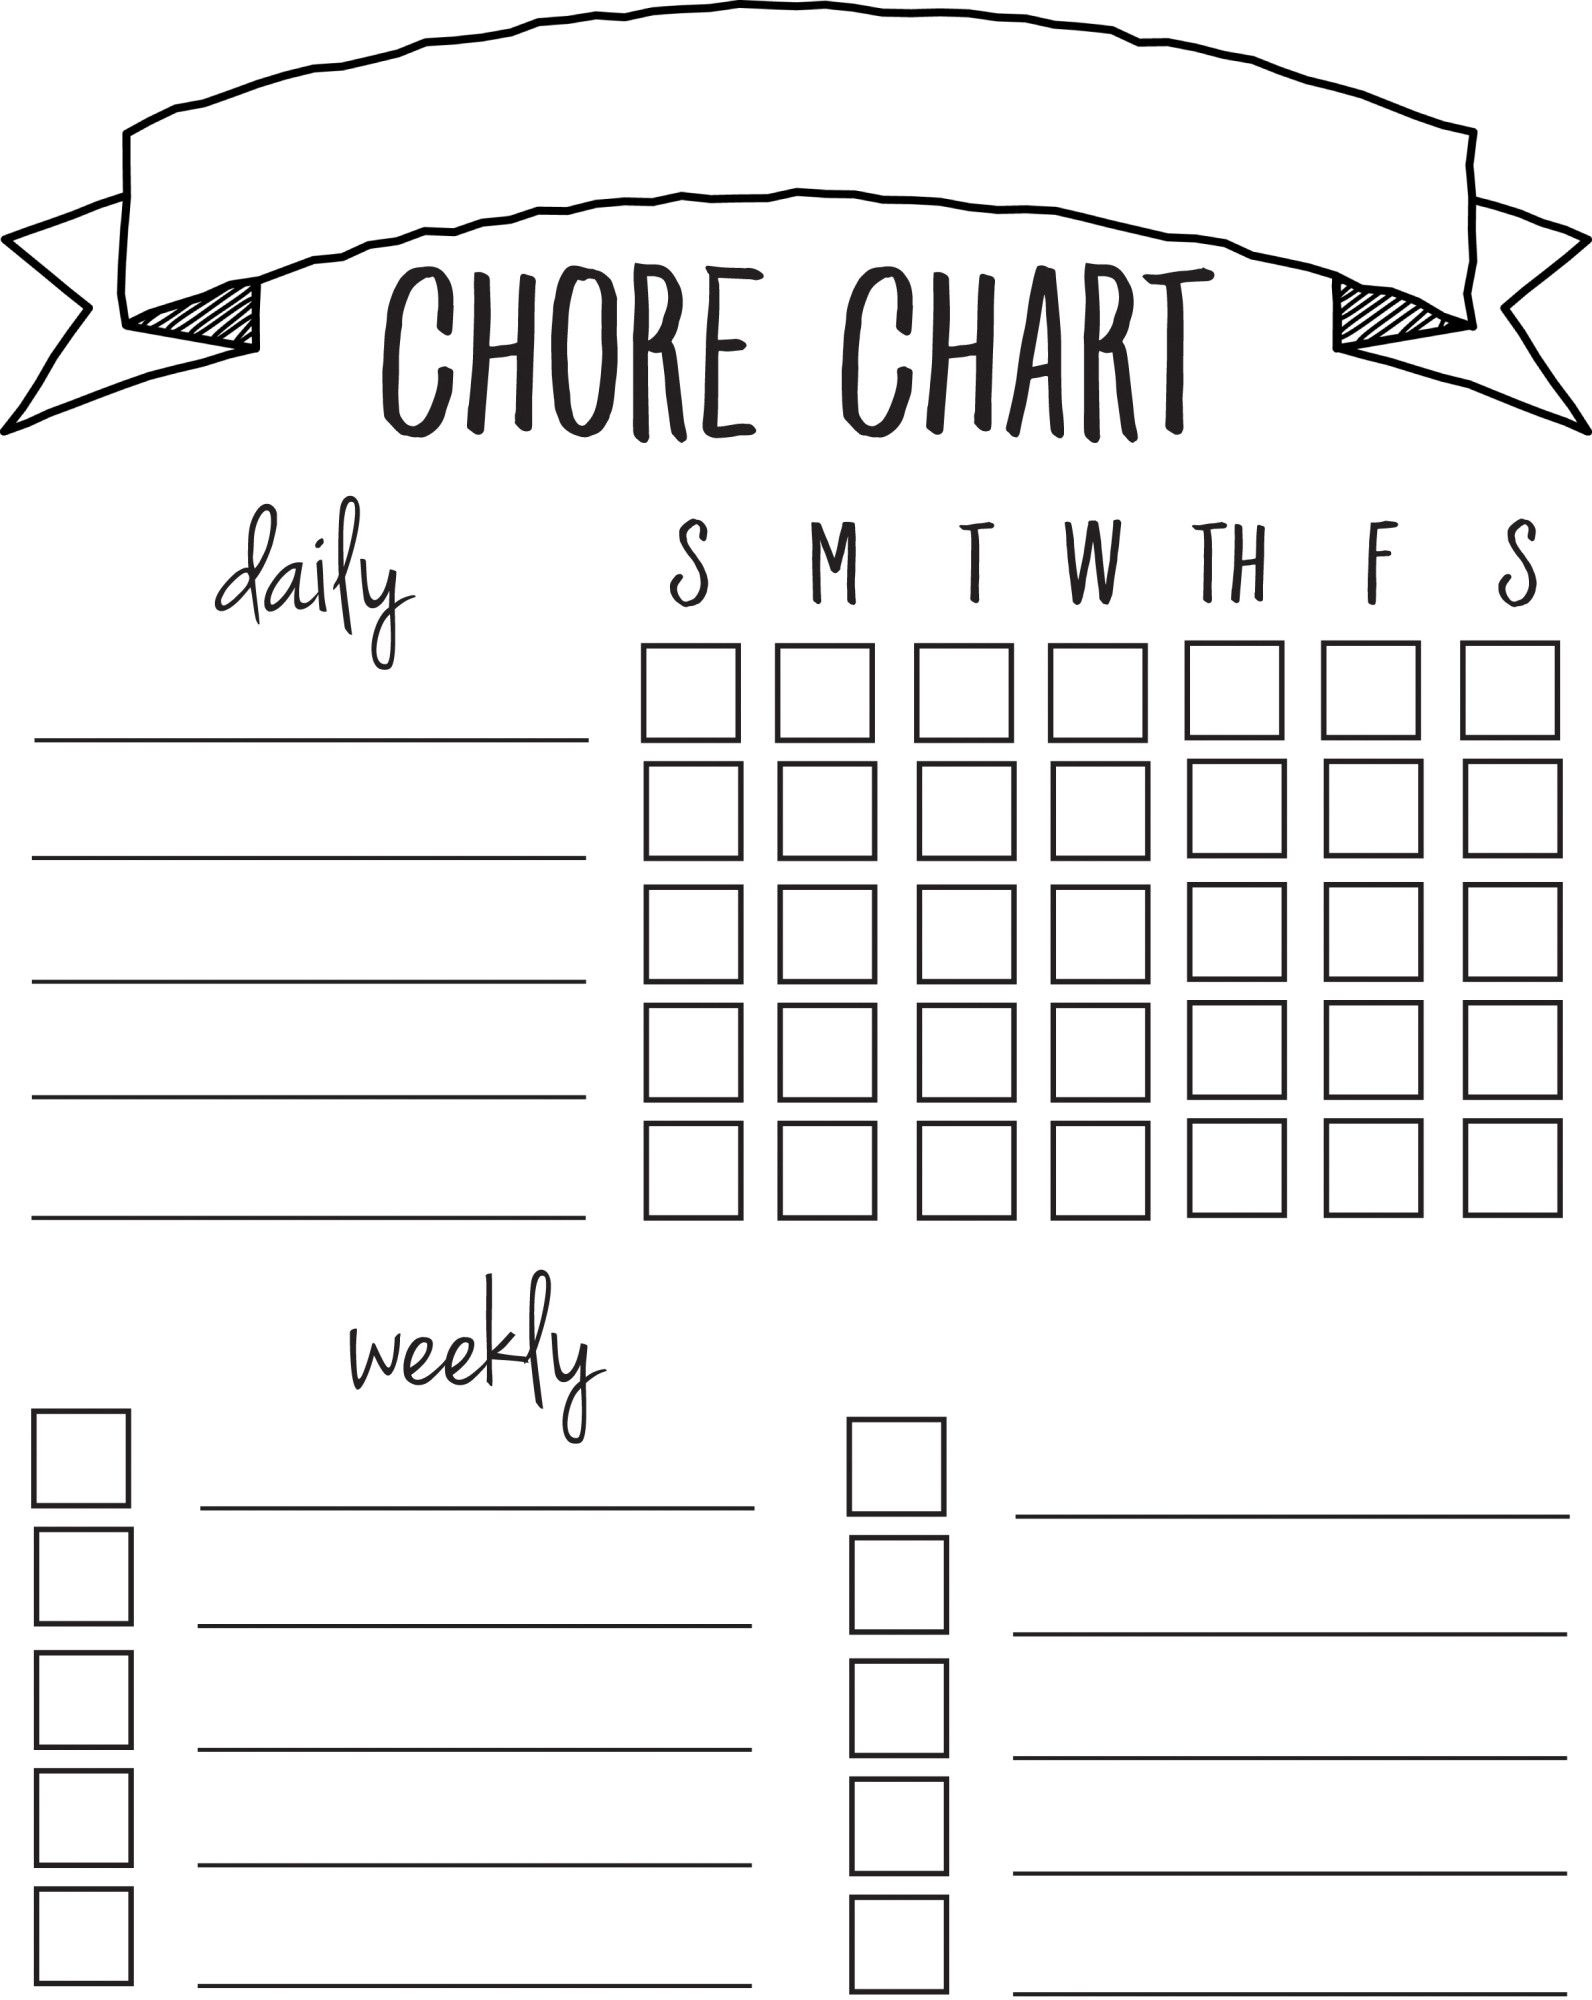 Diy Printable Chore Chart | Free Printables Nov/feb | Chore Chart - Free Printable Chore Chart Ideas